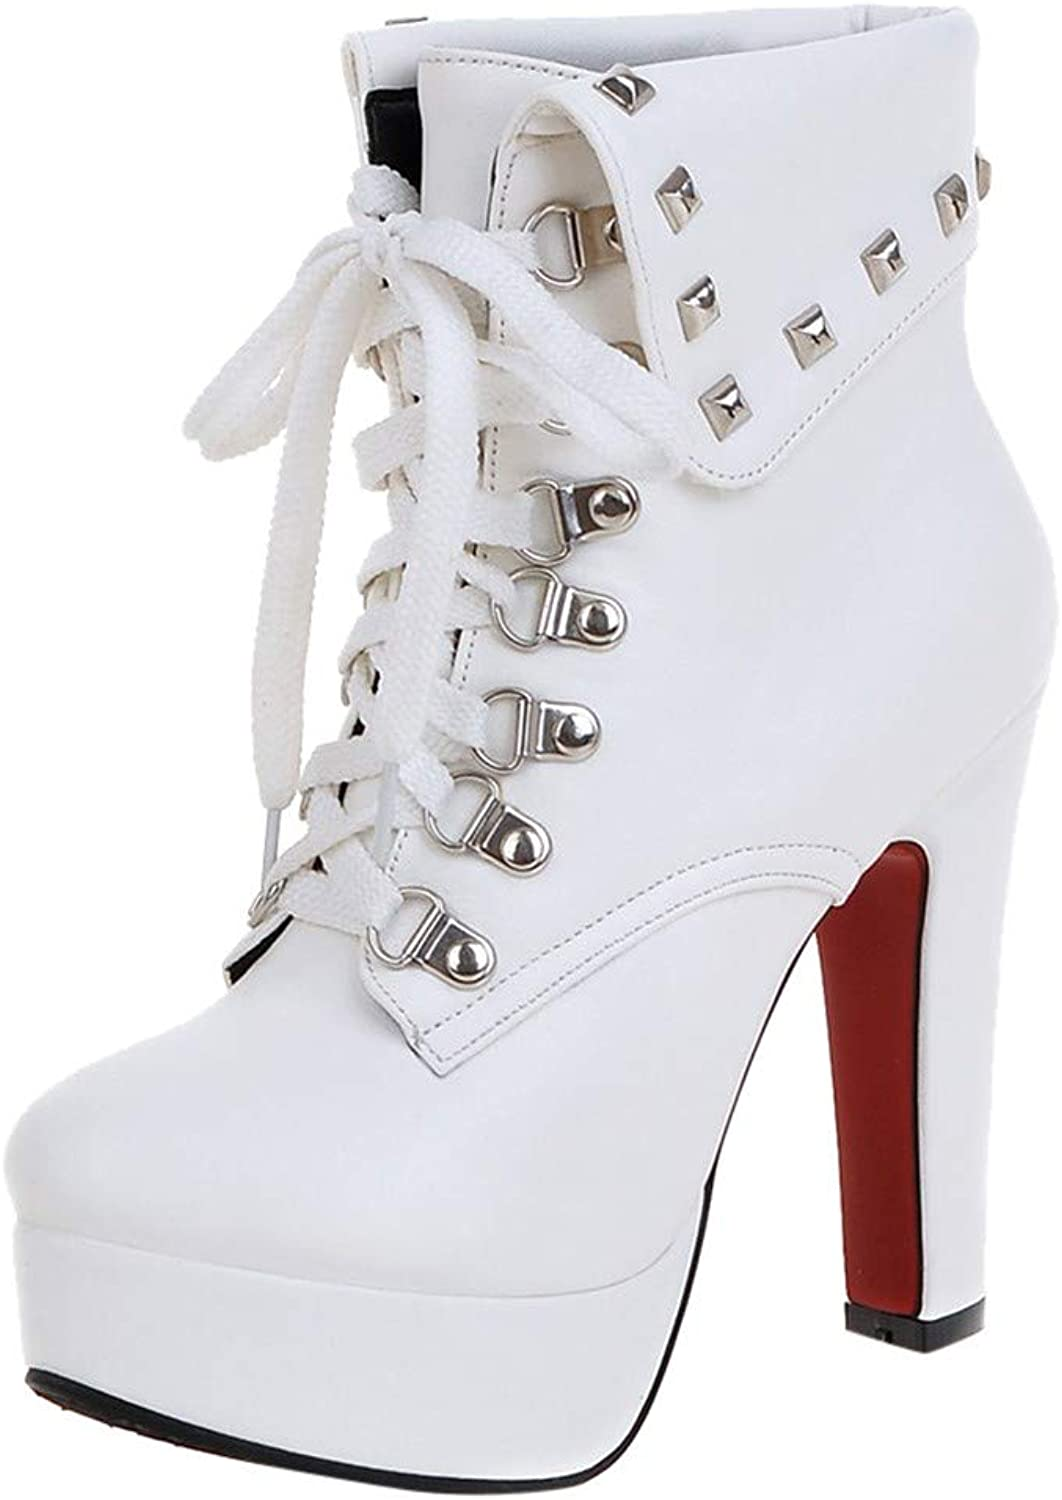 RedBrowm-women Solid Metal Rivet Thick Super High Heel Ankle Boots Round Toe shoes White